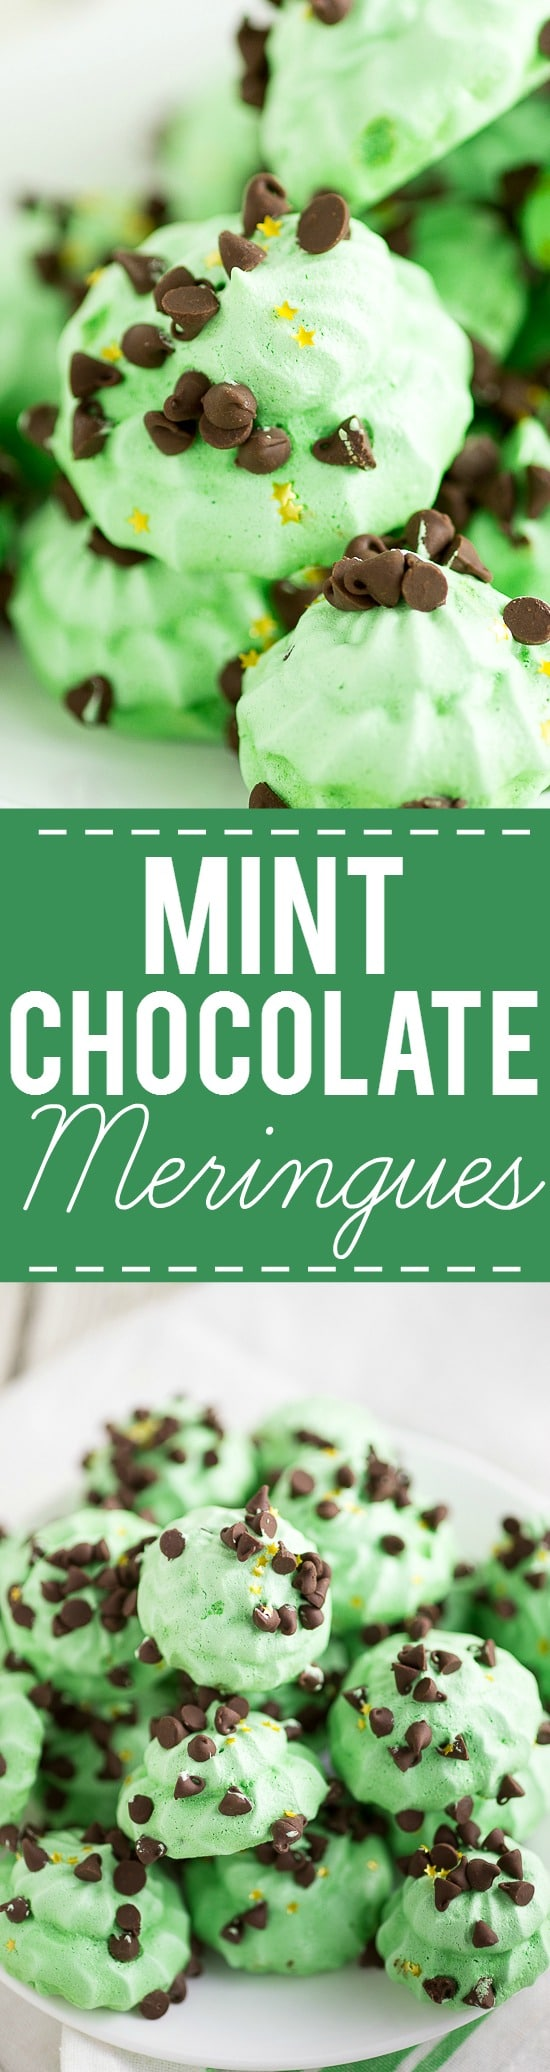 Mint Chocolate Meringues Recipe -Light and fluffy with the perfect amount of crispy, these cool and minty Mint Chocolate Meringues are perfect for mint chocolate lovers. Festive for Christmas or St Patrick's Day too!